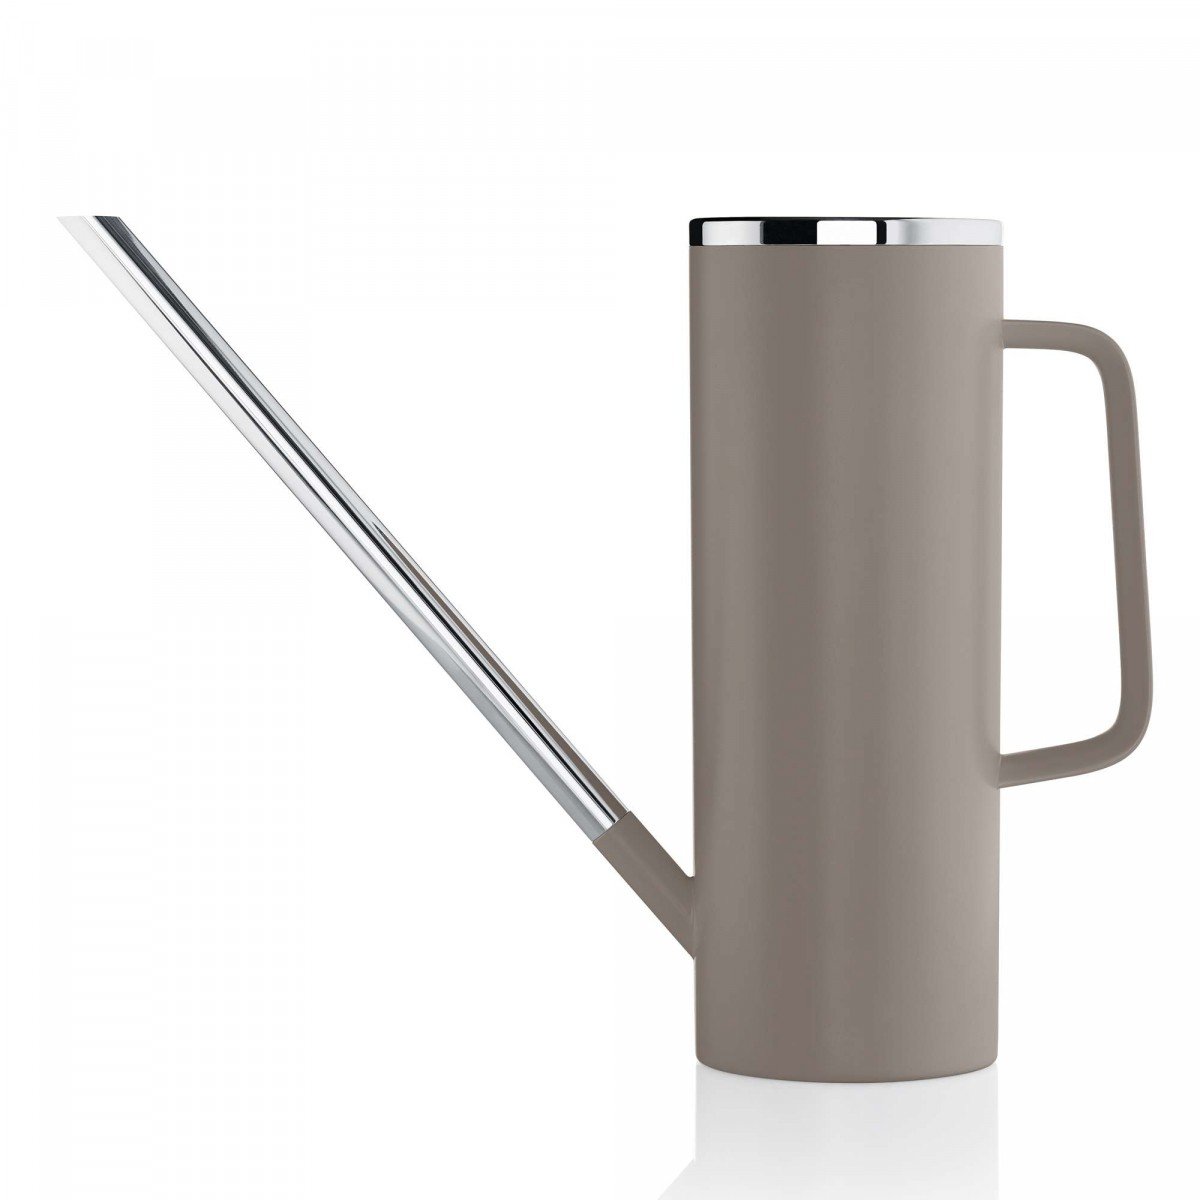 Amity 5l Pendant Brushed Chrome: Blomus Limbo Polished Taupe & Silver 1.5L Watering Can